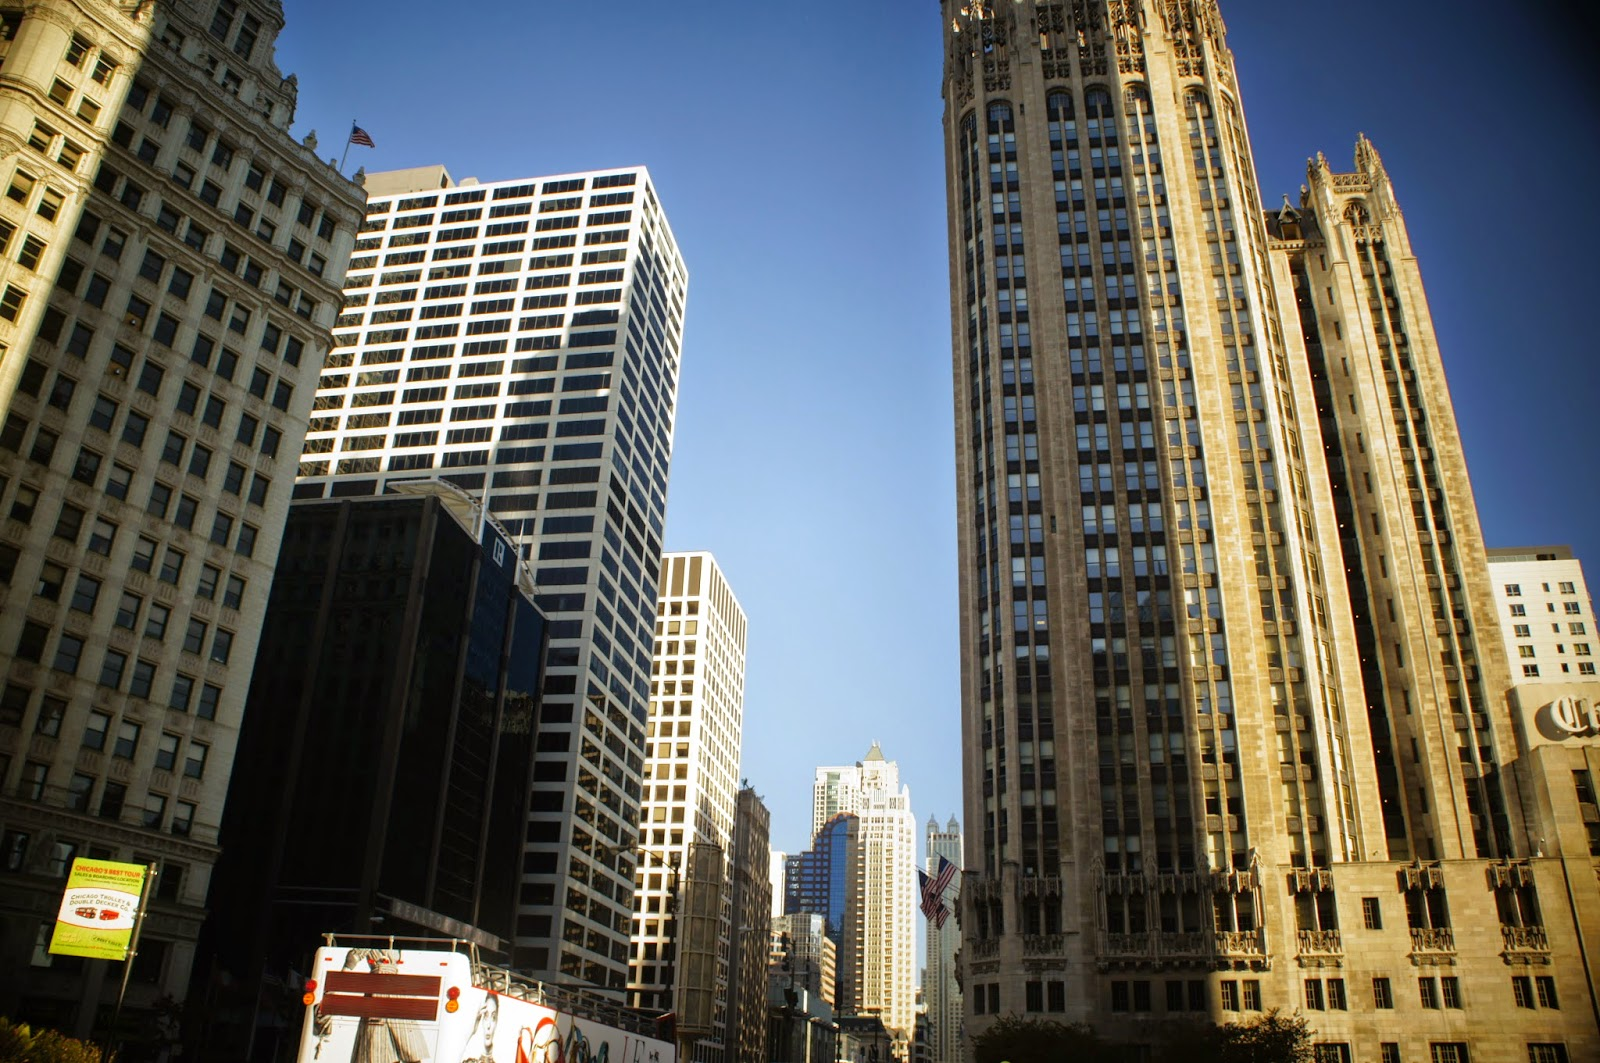 Is chicago a good city for dating